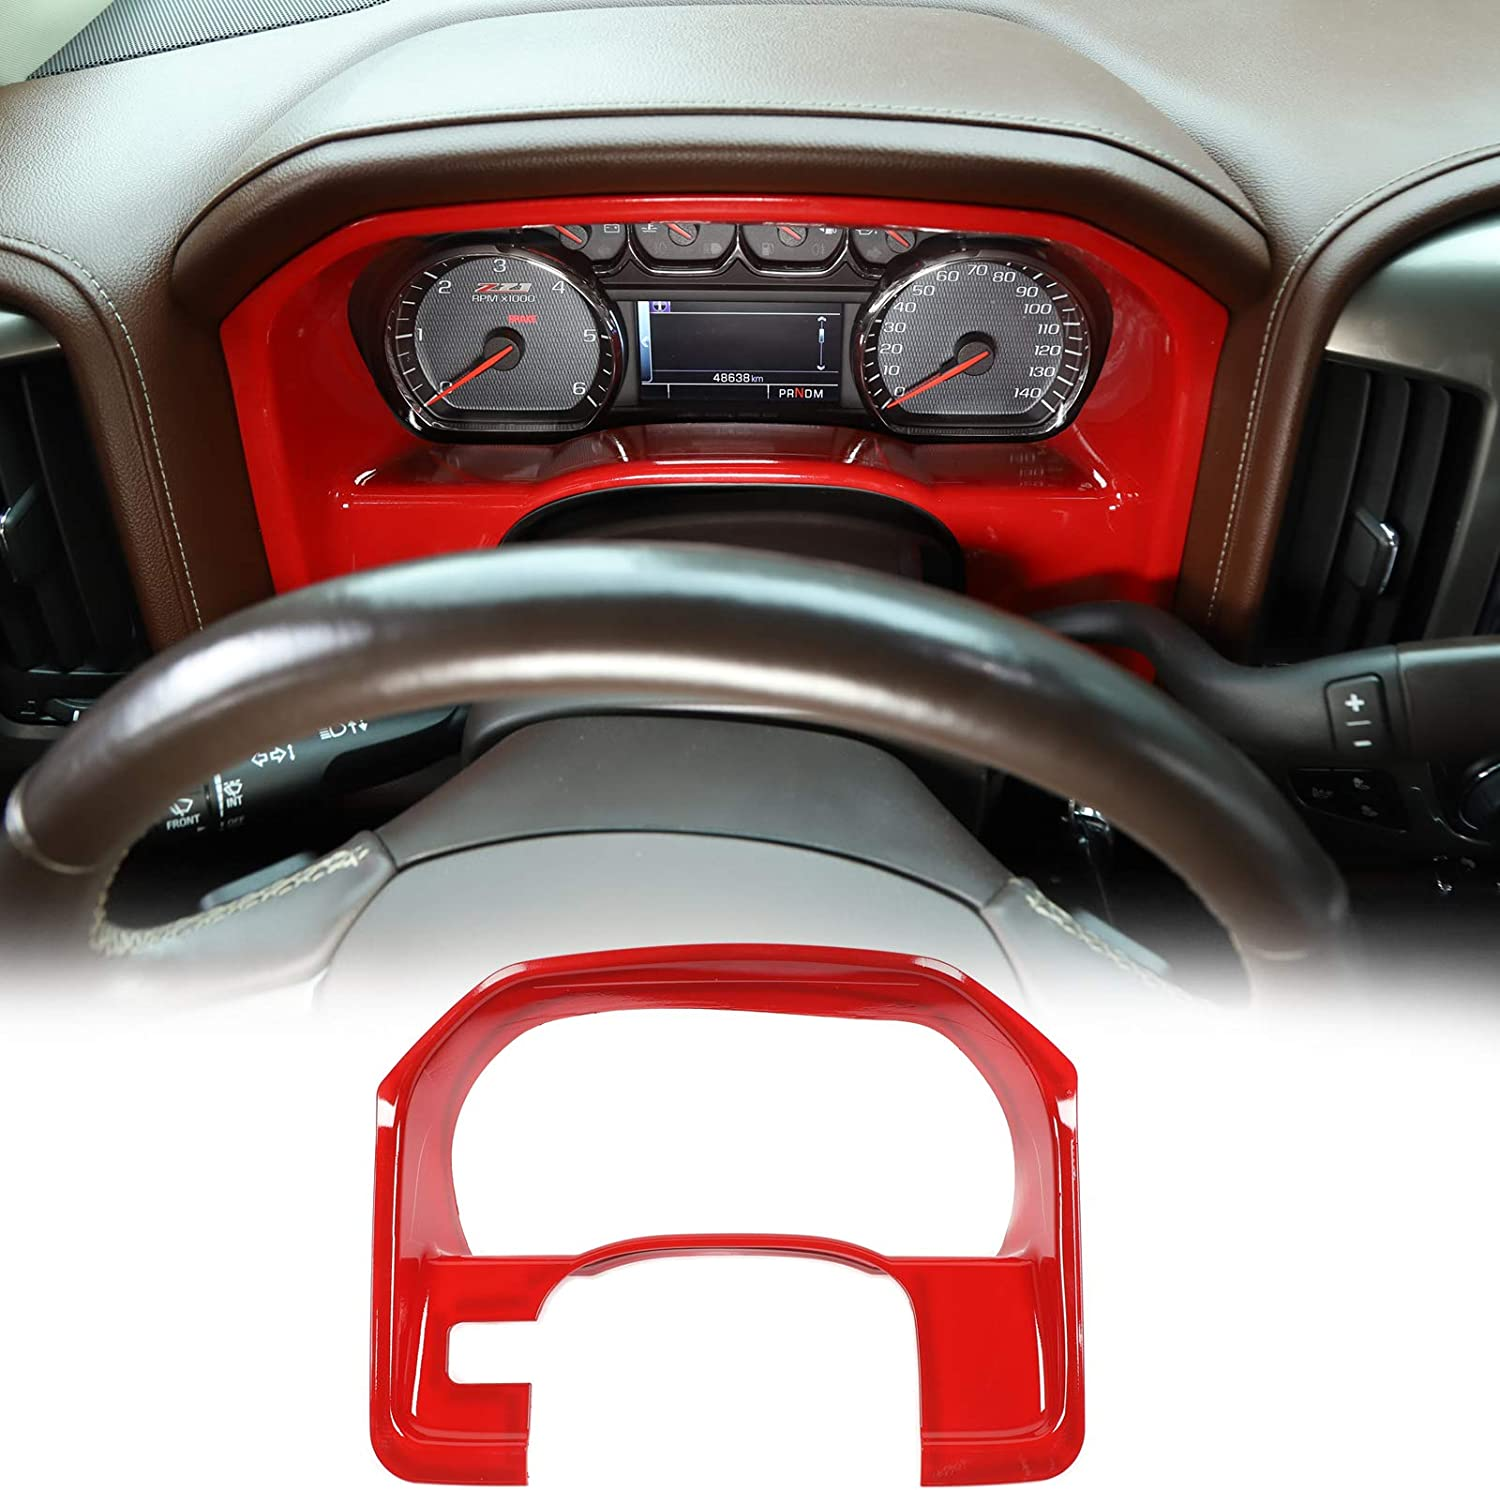 RT-TCZ Dash Board Instrument Trim Cover ABS Interior Dashboard Accessories Trim Cover for Chevy Silverado 2010-2017 for GMC Sierra 2010-2017 Red